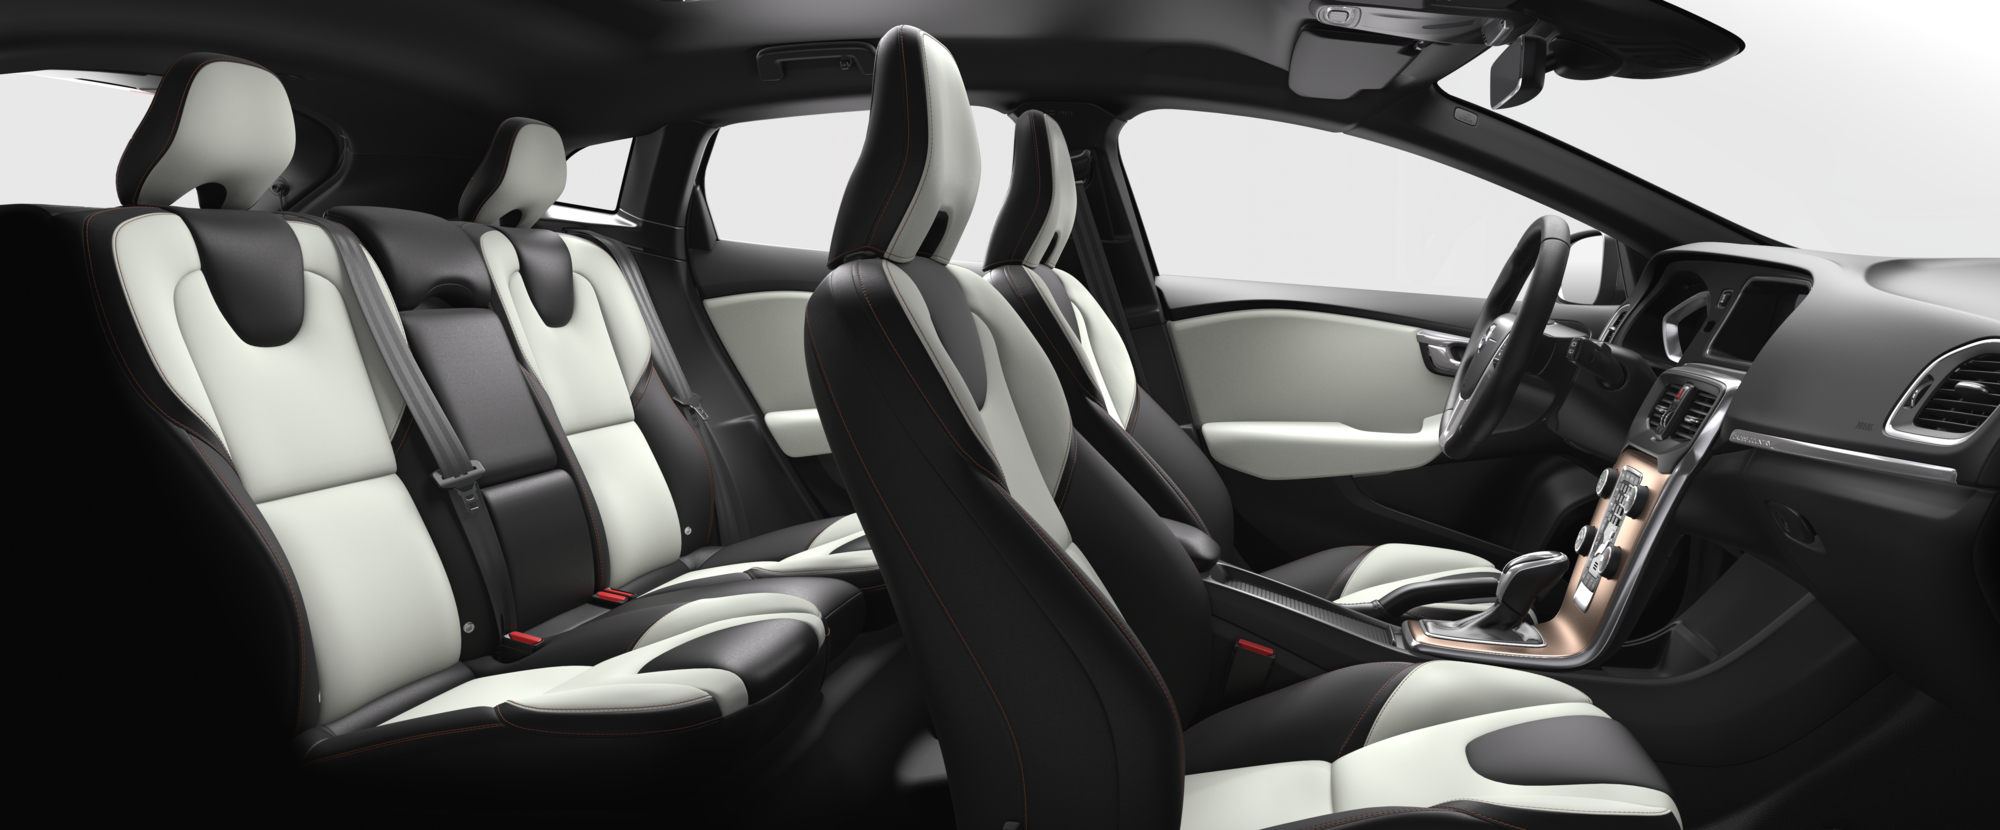 Interior shot of the Volvo V40 Cross Country with Charcoal / Blond T-Tec Seats